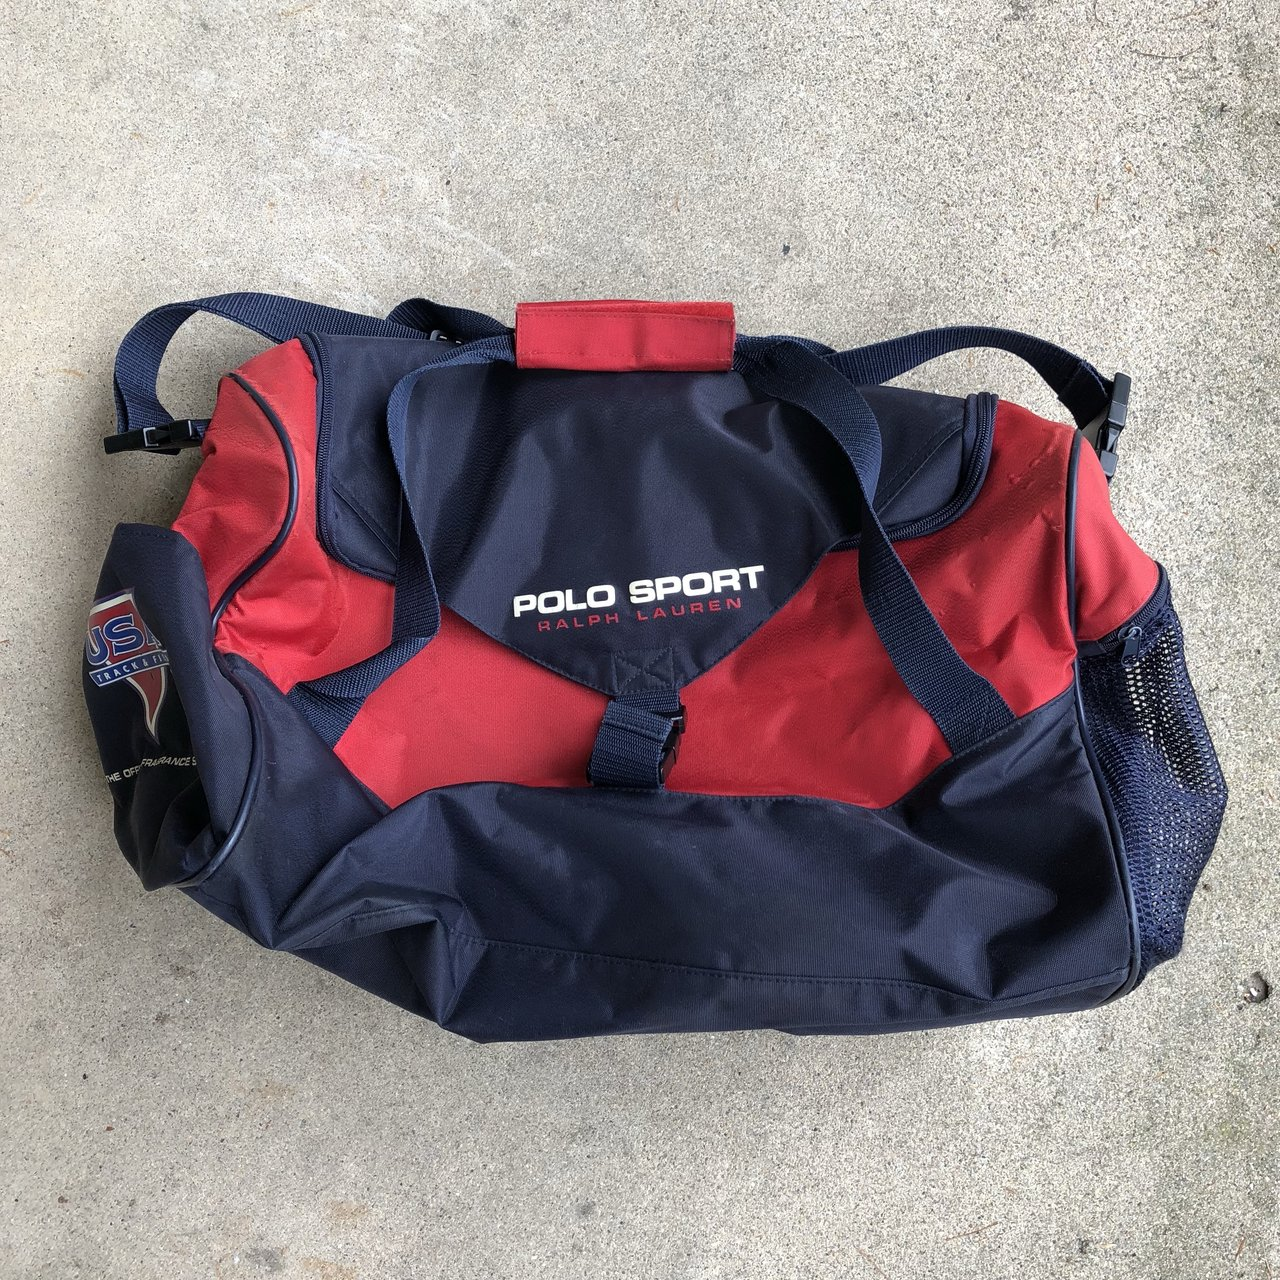 f327244978a9 Vintage 90s polo sport Ralph Lauren duffel bag USA track and - Depop